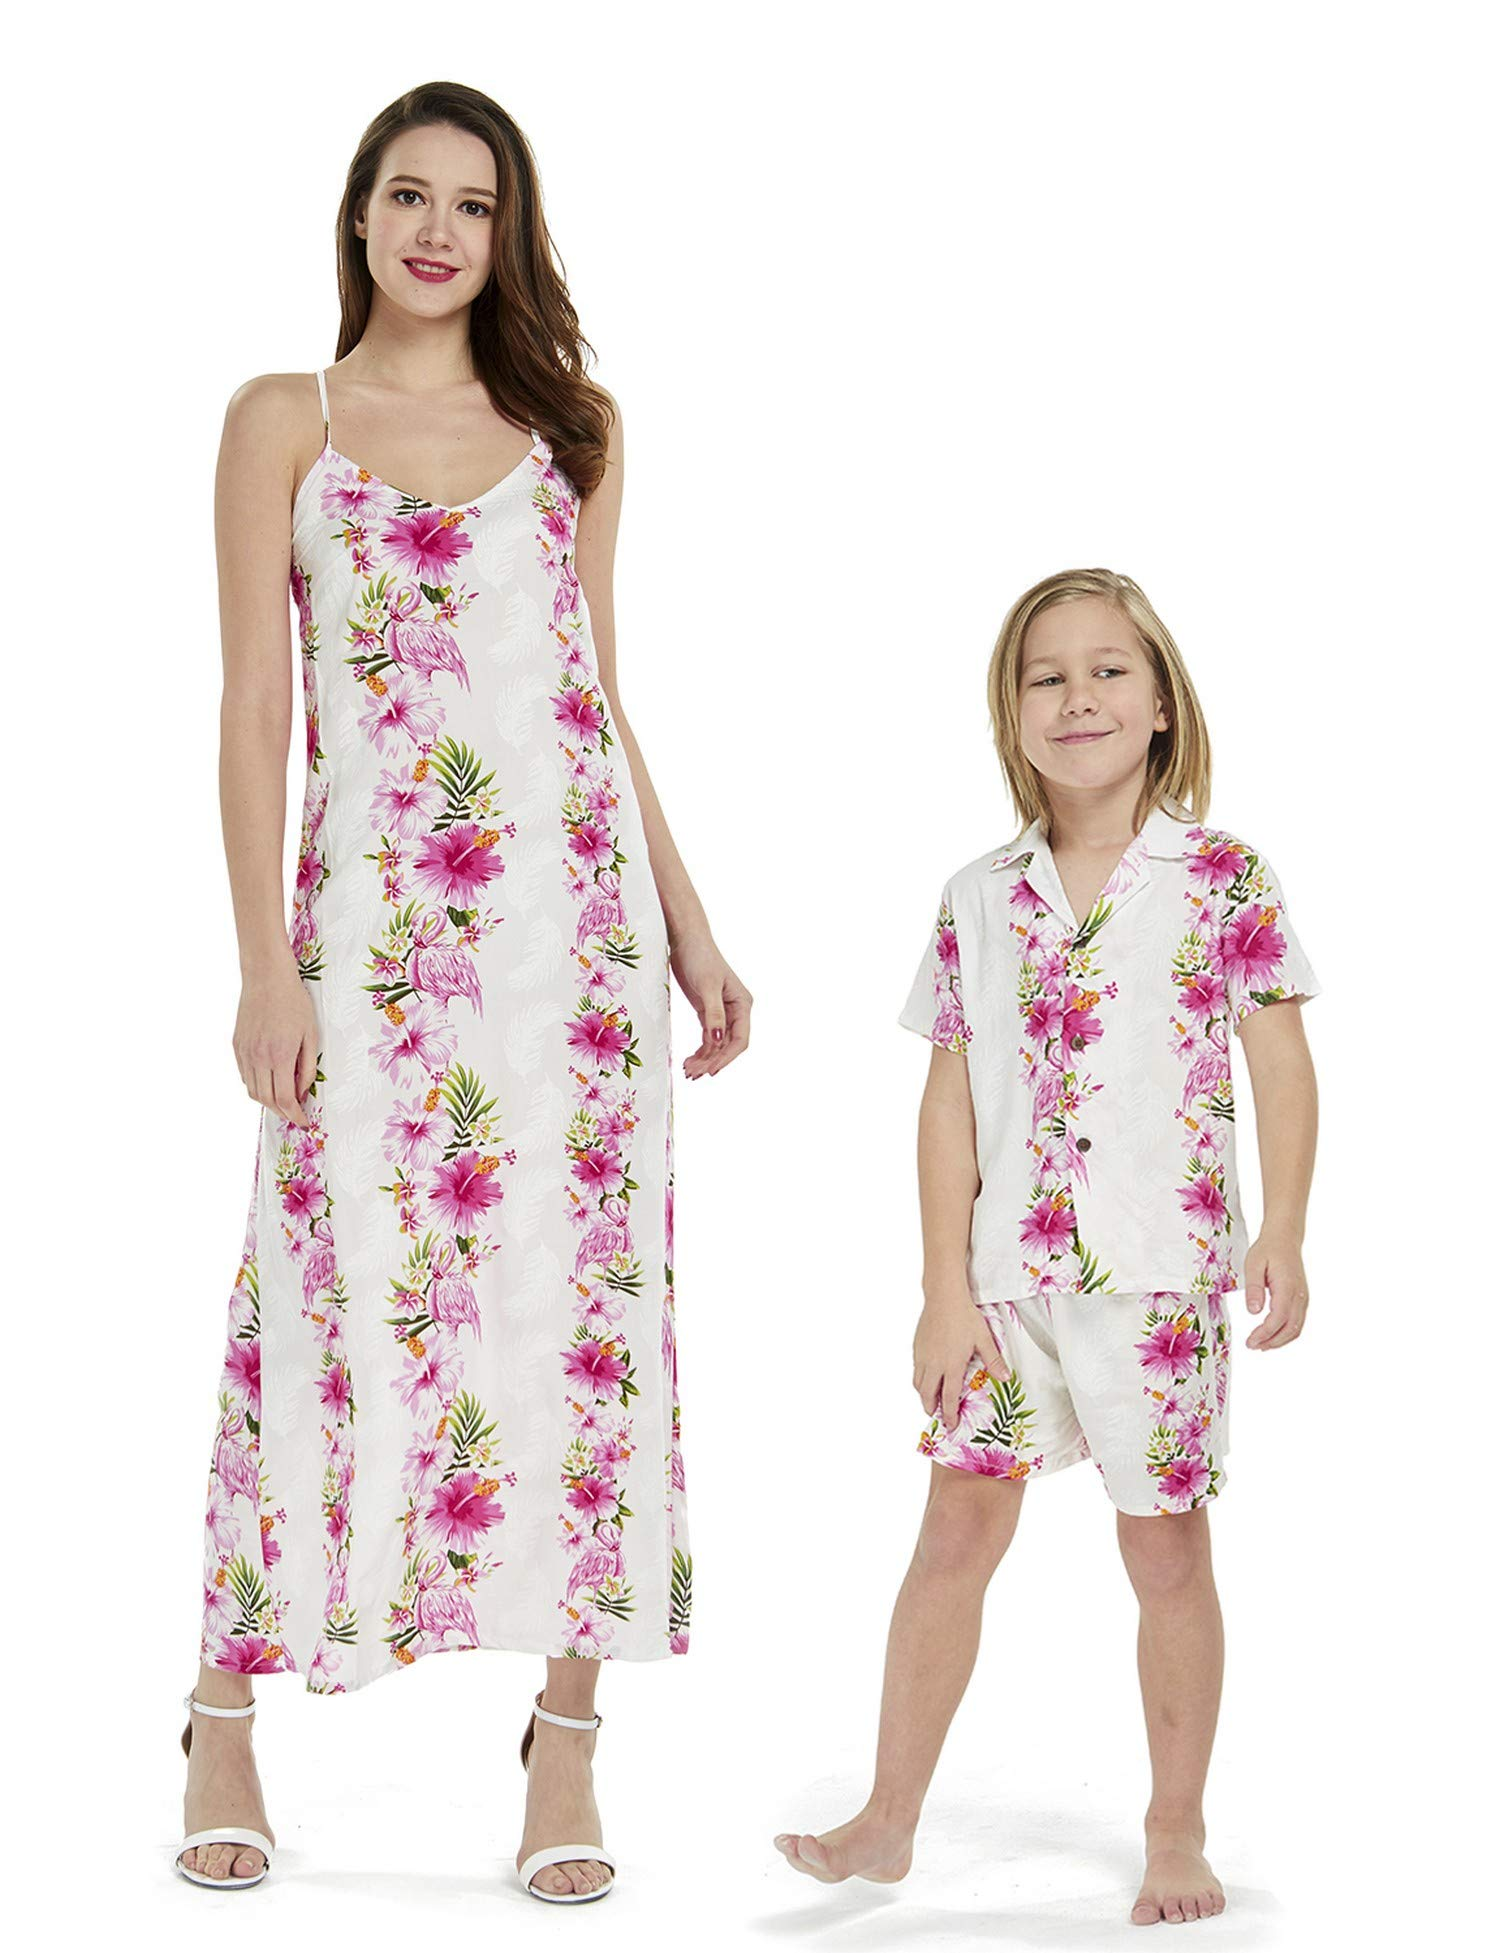 Matching Mother Son Hawaiian Luau Outfit Dress Shirt in Pink Hibiscus Vine Women S Boy 12 by Hawaii Hangover (Image #1)